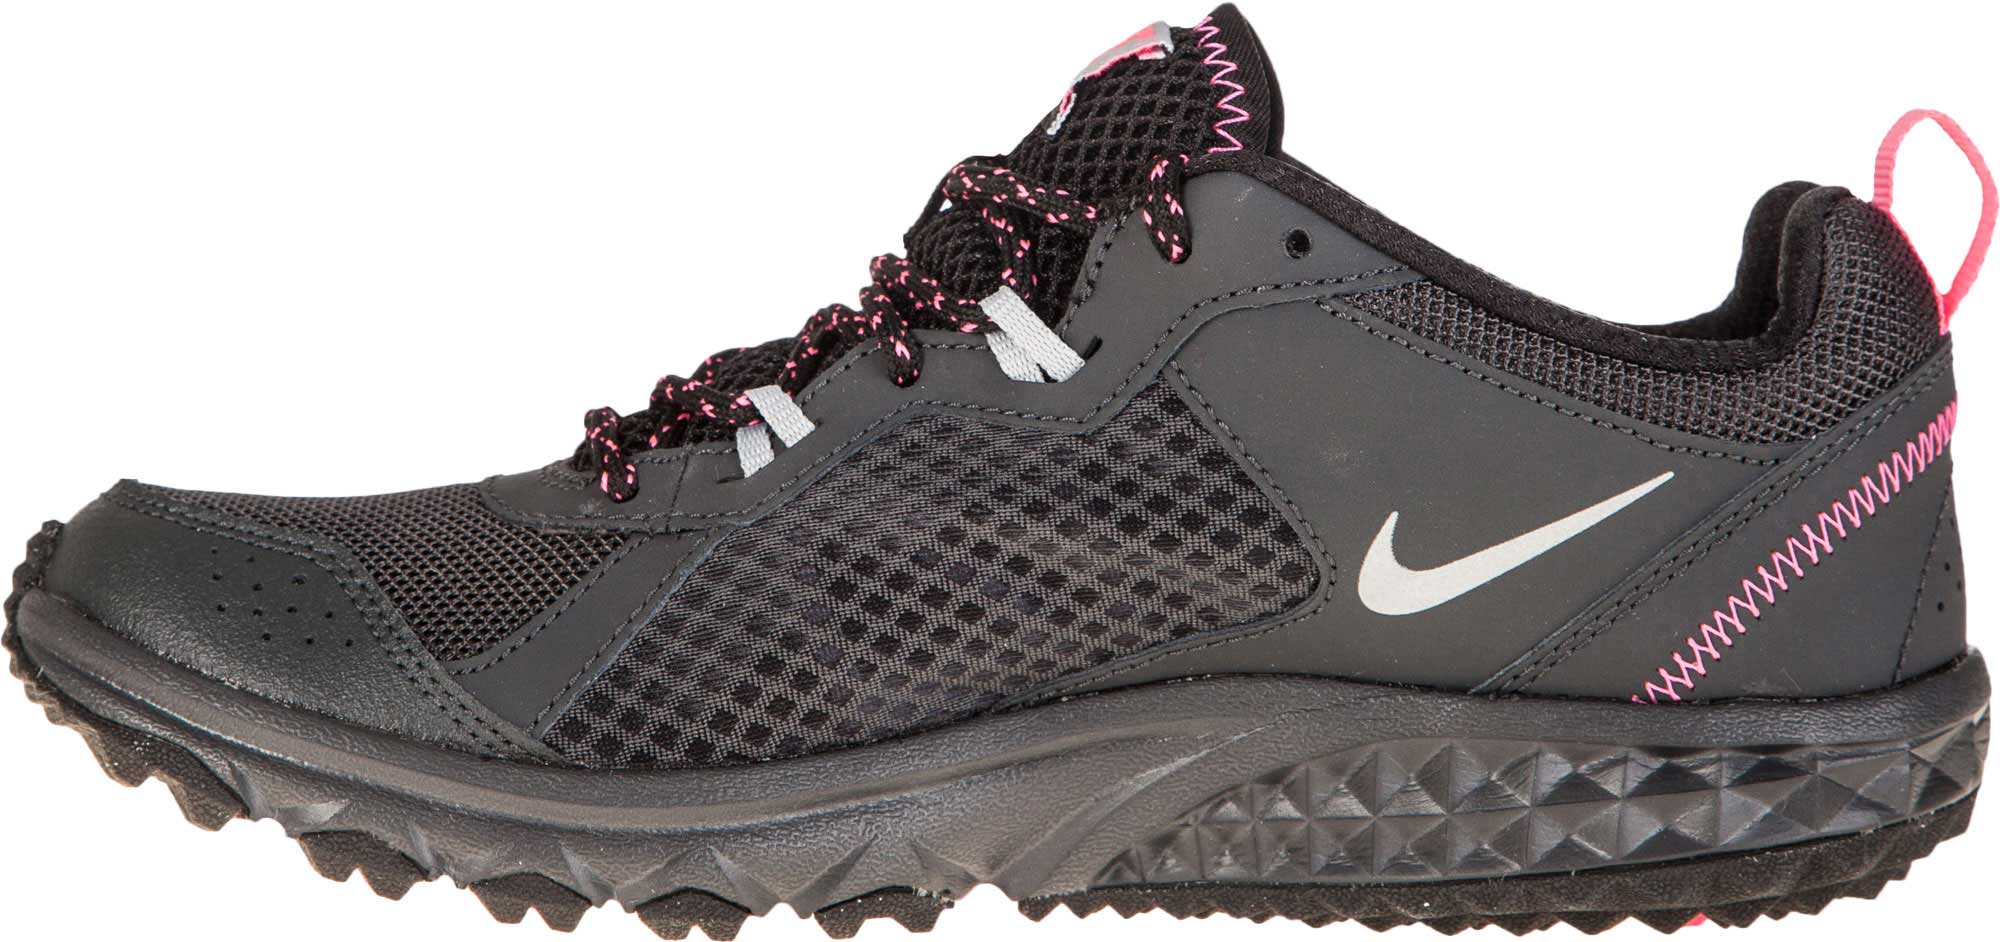 Trail Running Shoe Images